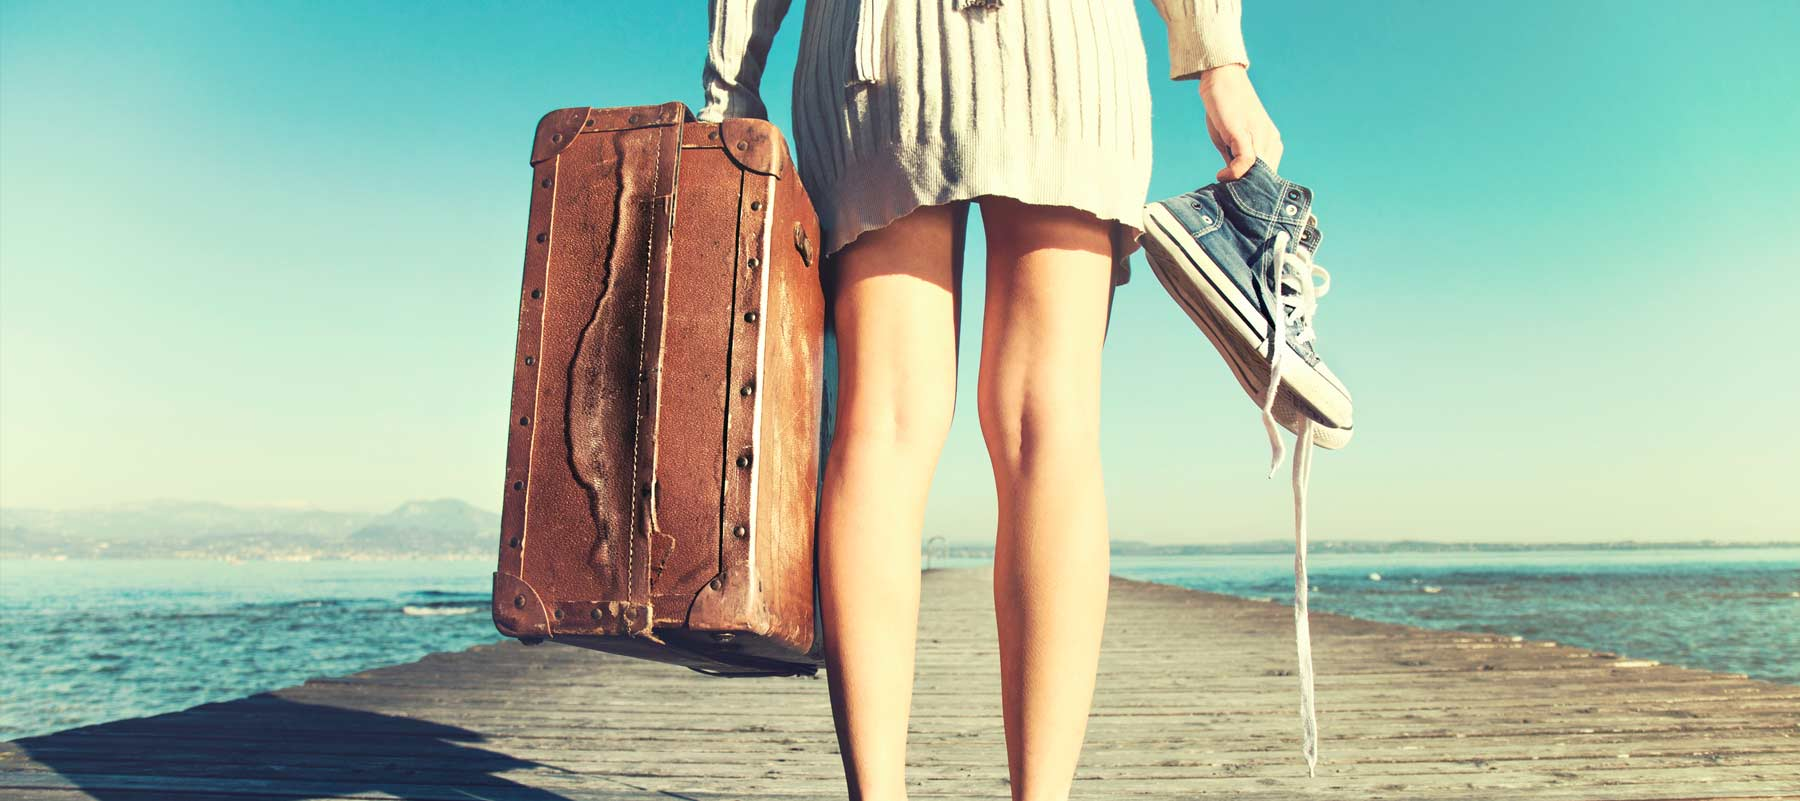 Suitcase-Barefoot-Woman